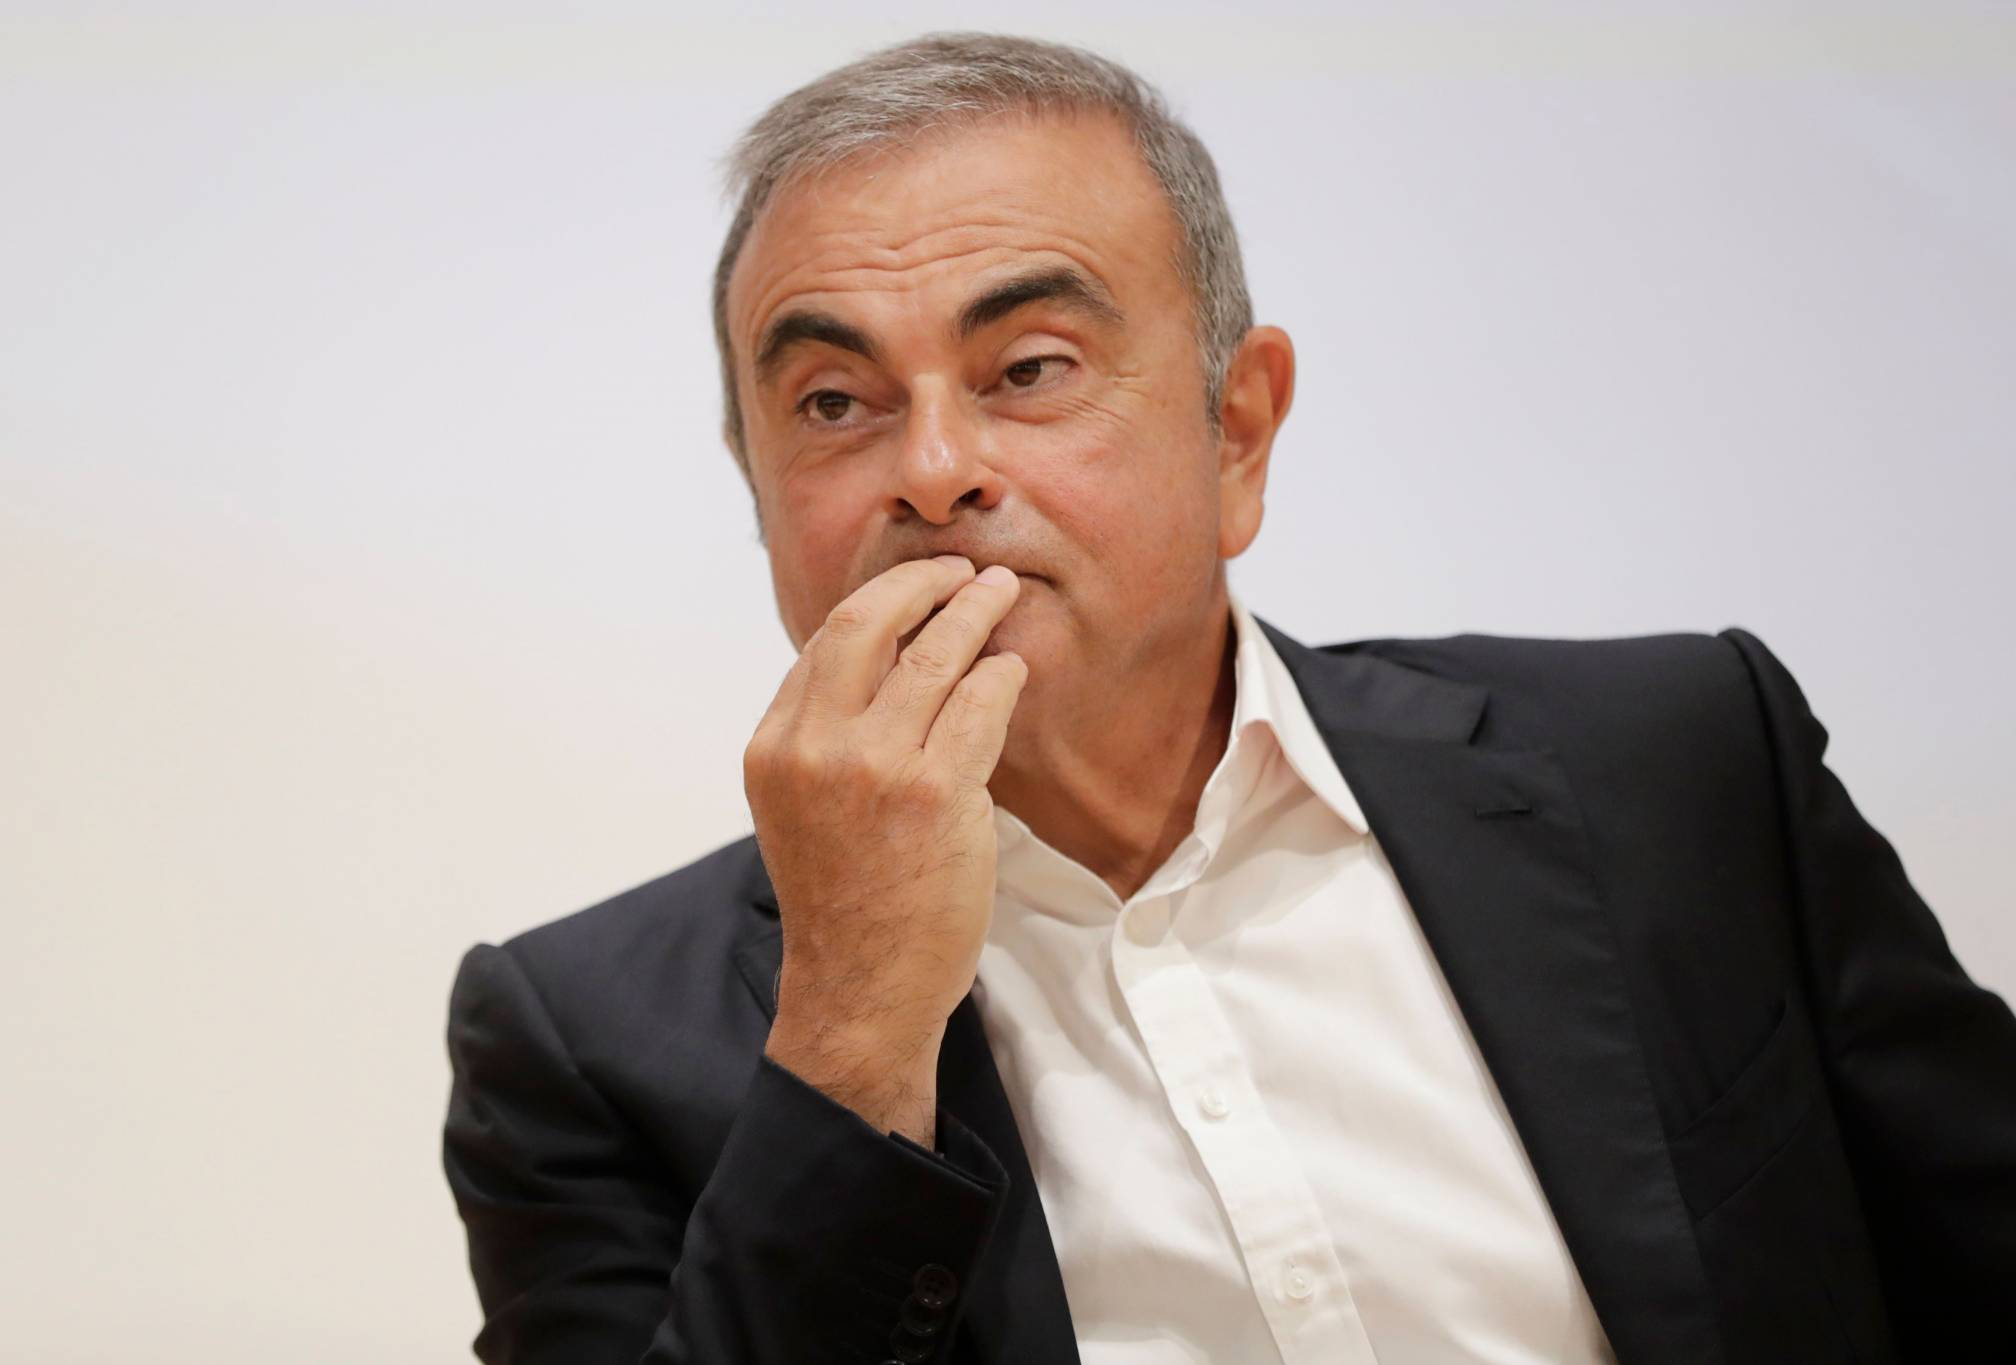 A l'Usek, Carlos Ghosn veut former les leaders de demain